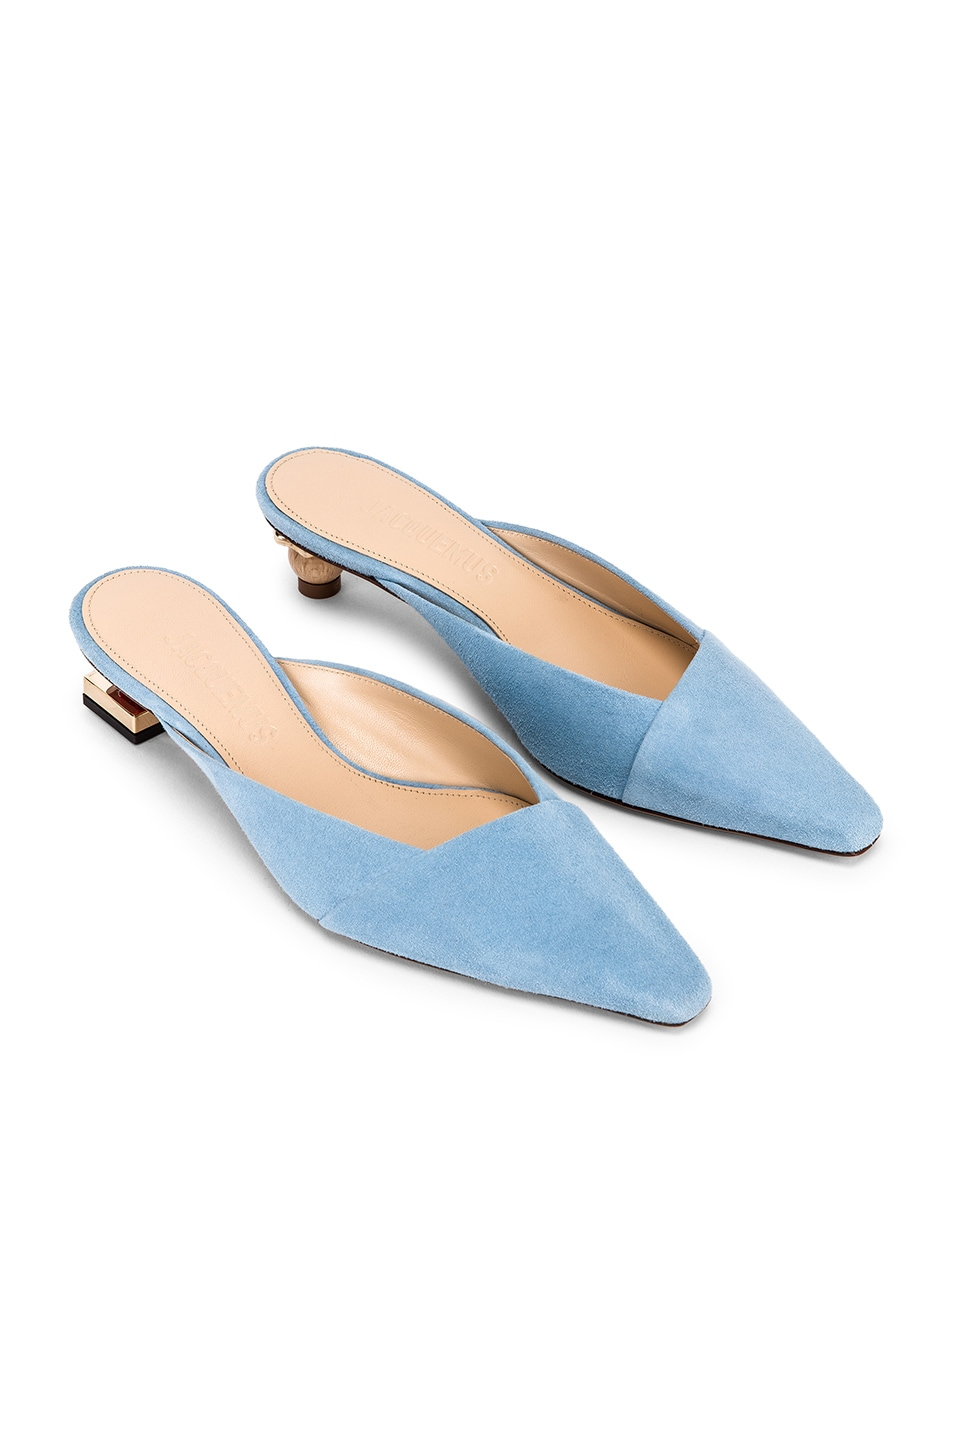 Image 1 of JACQUEMUS Maceio Mules in Light Blue Suede